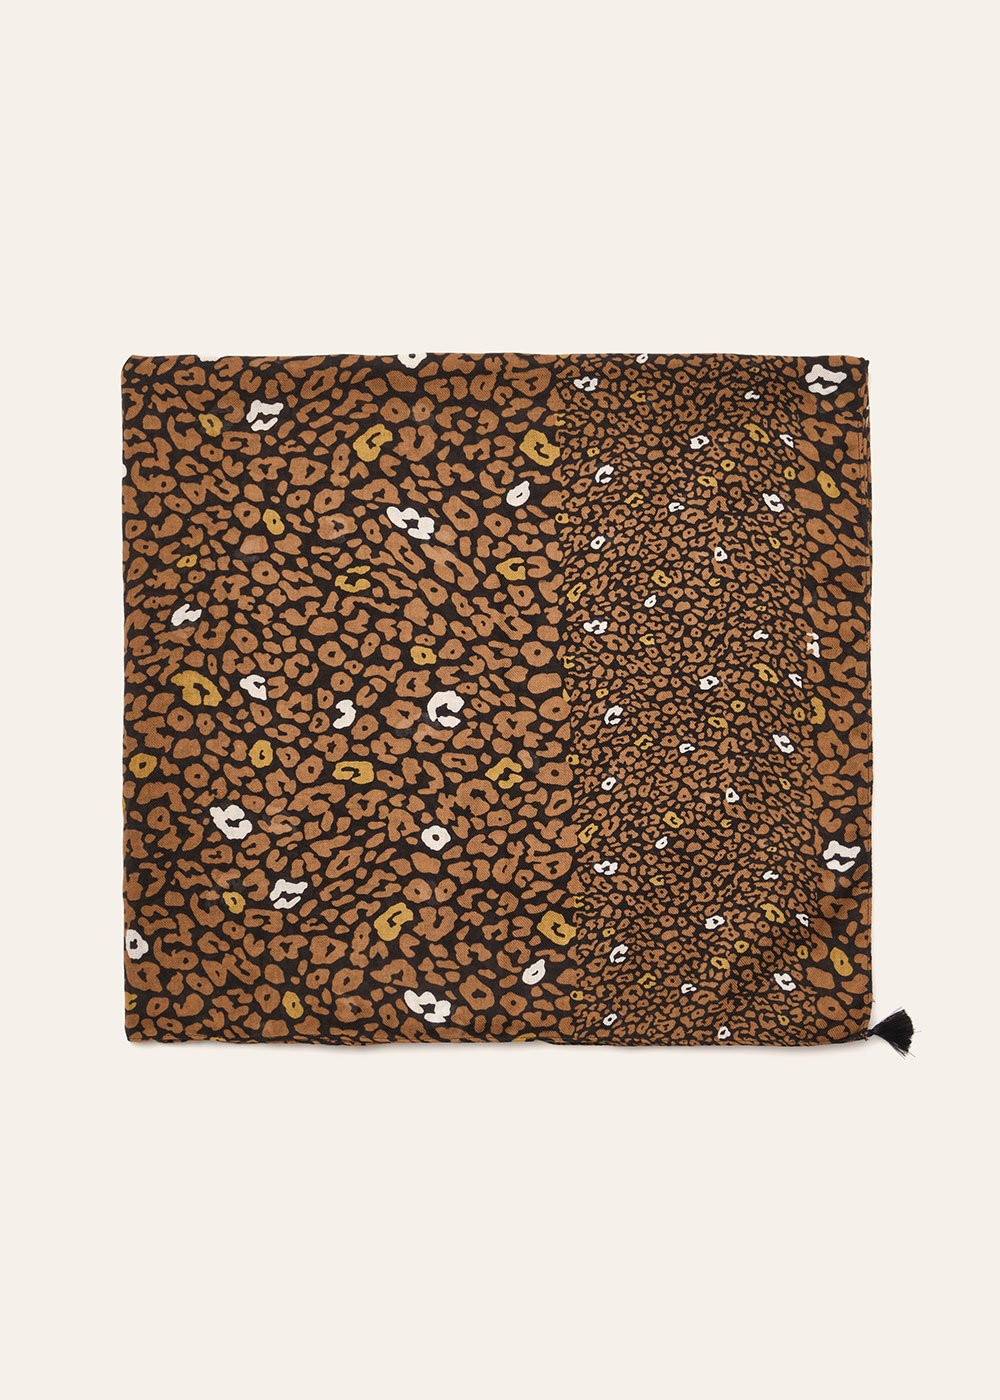 Shad scarf with micro spotted pattern - Terra  / Black - Woman